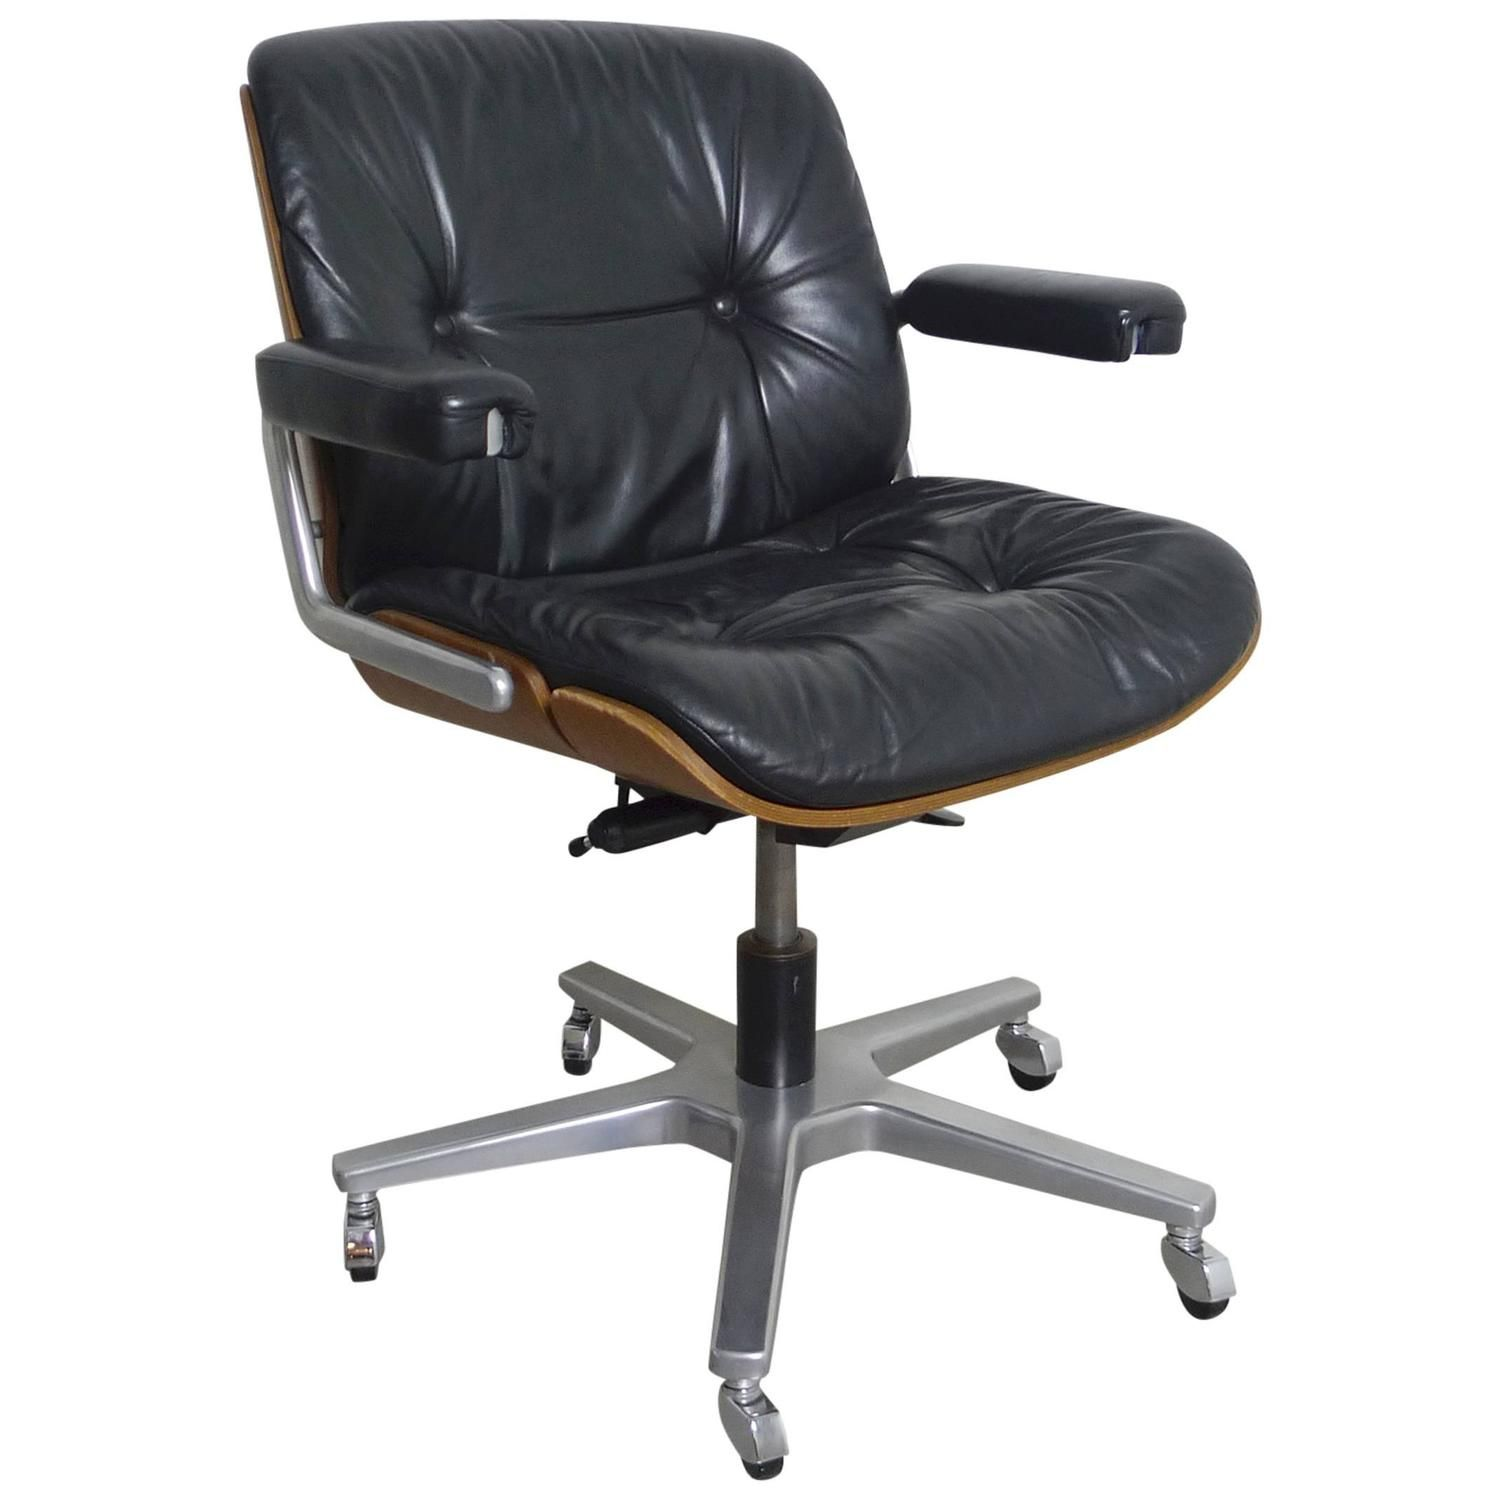 comfortable office furniture. View This Item And Discover Similar Office Chairs Desk For Sale At - Elaborate Very Comfortable Chair With Laminated Wood Seat Shell Furniture